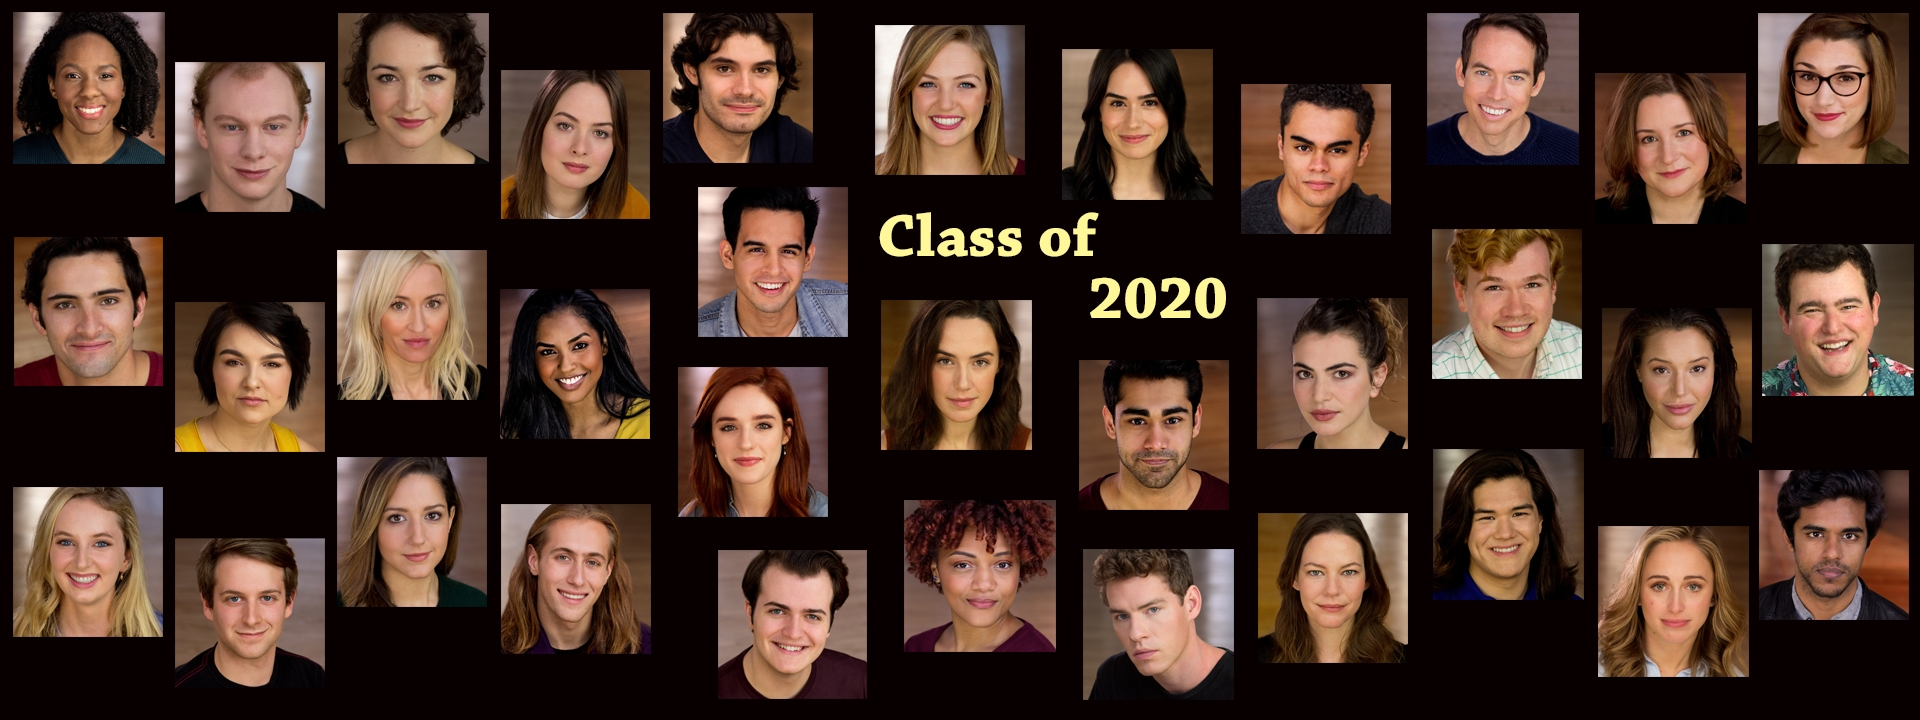 Slide: The Neighborhood Playhouse proudly presents this year's graduates.